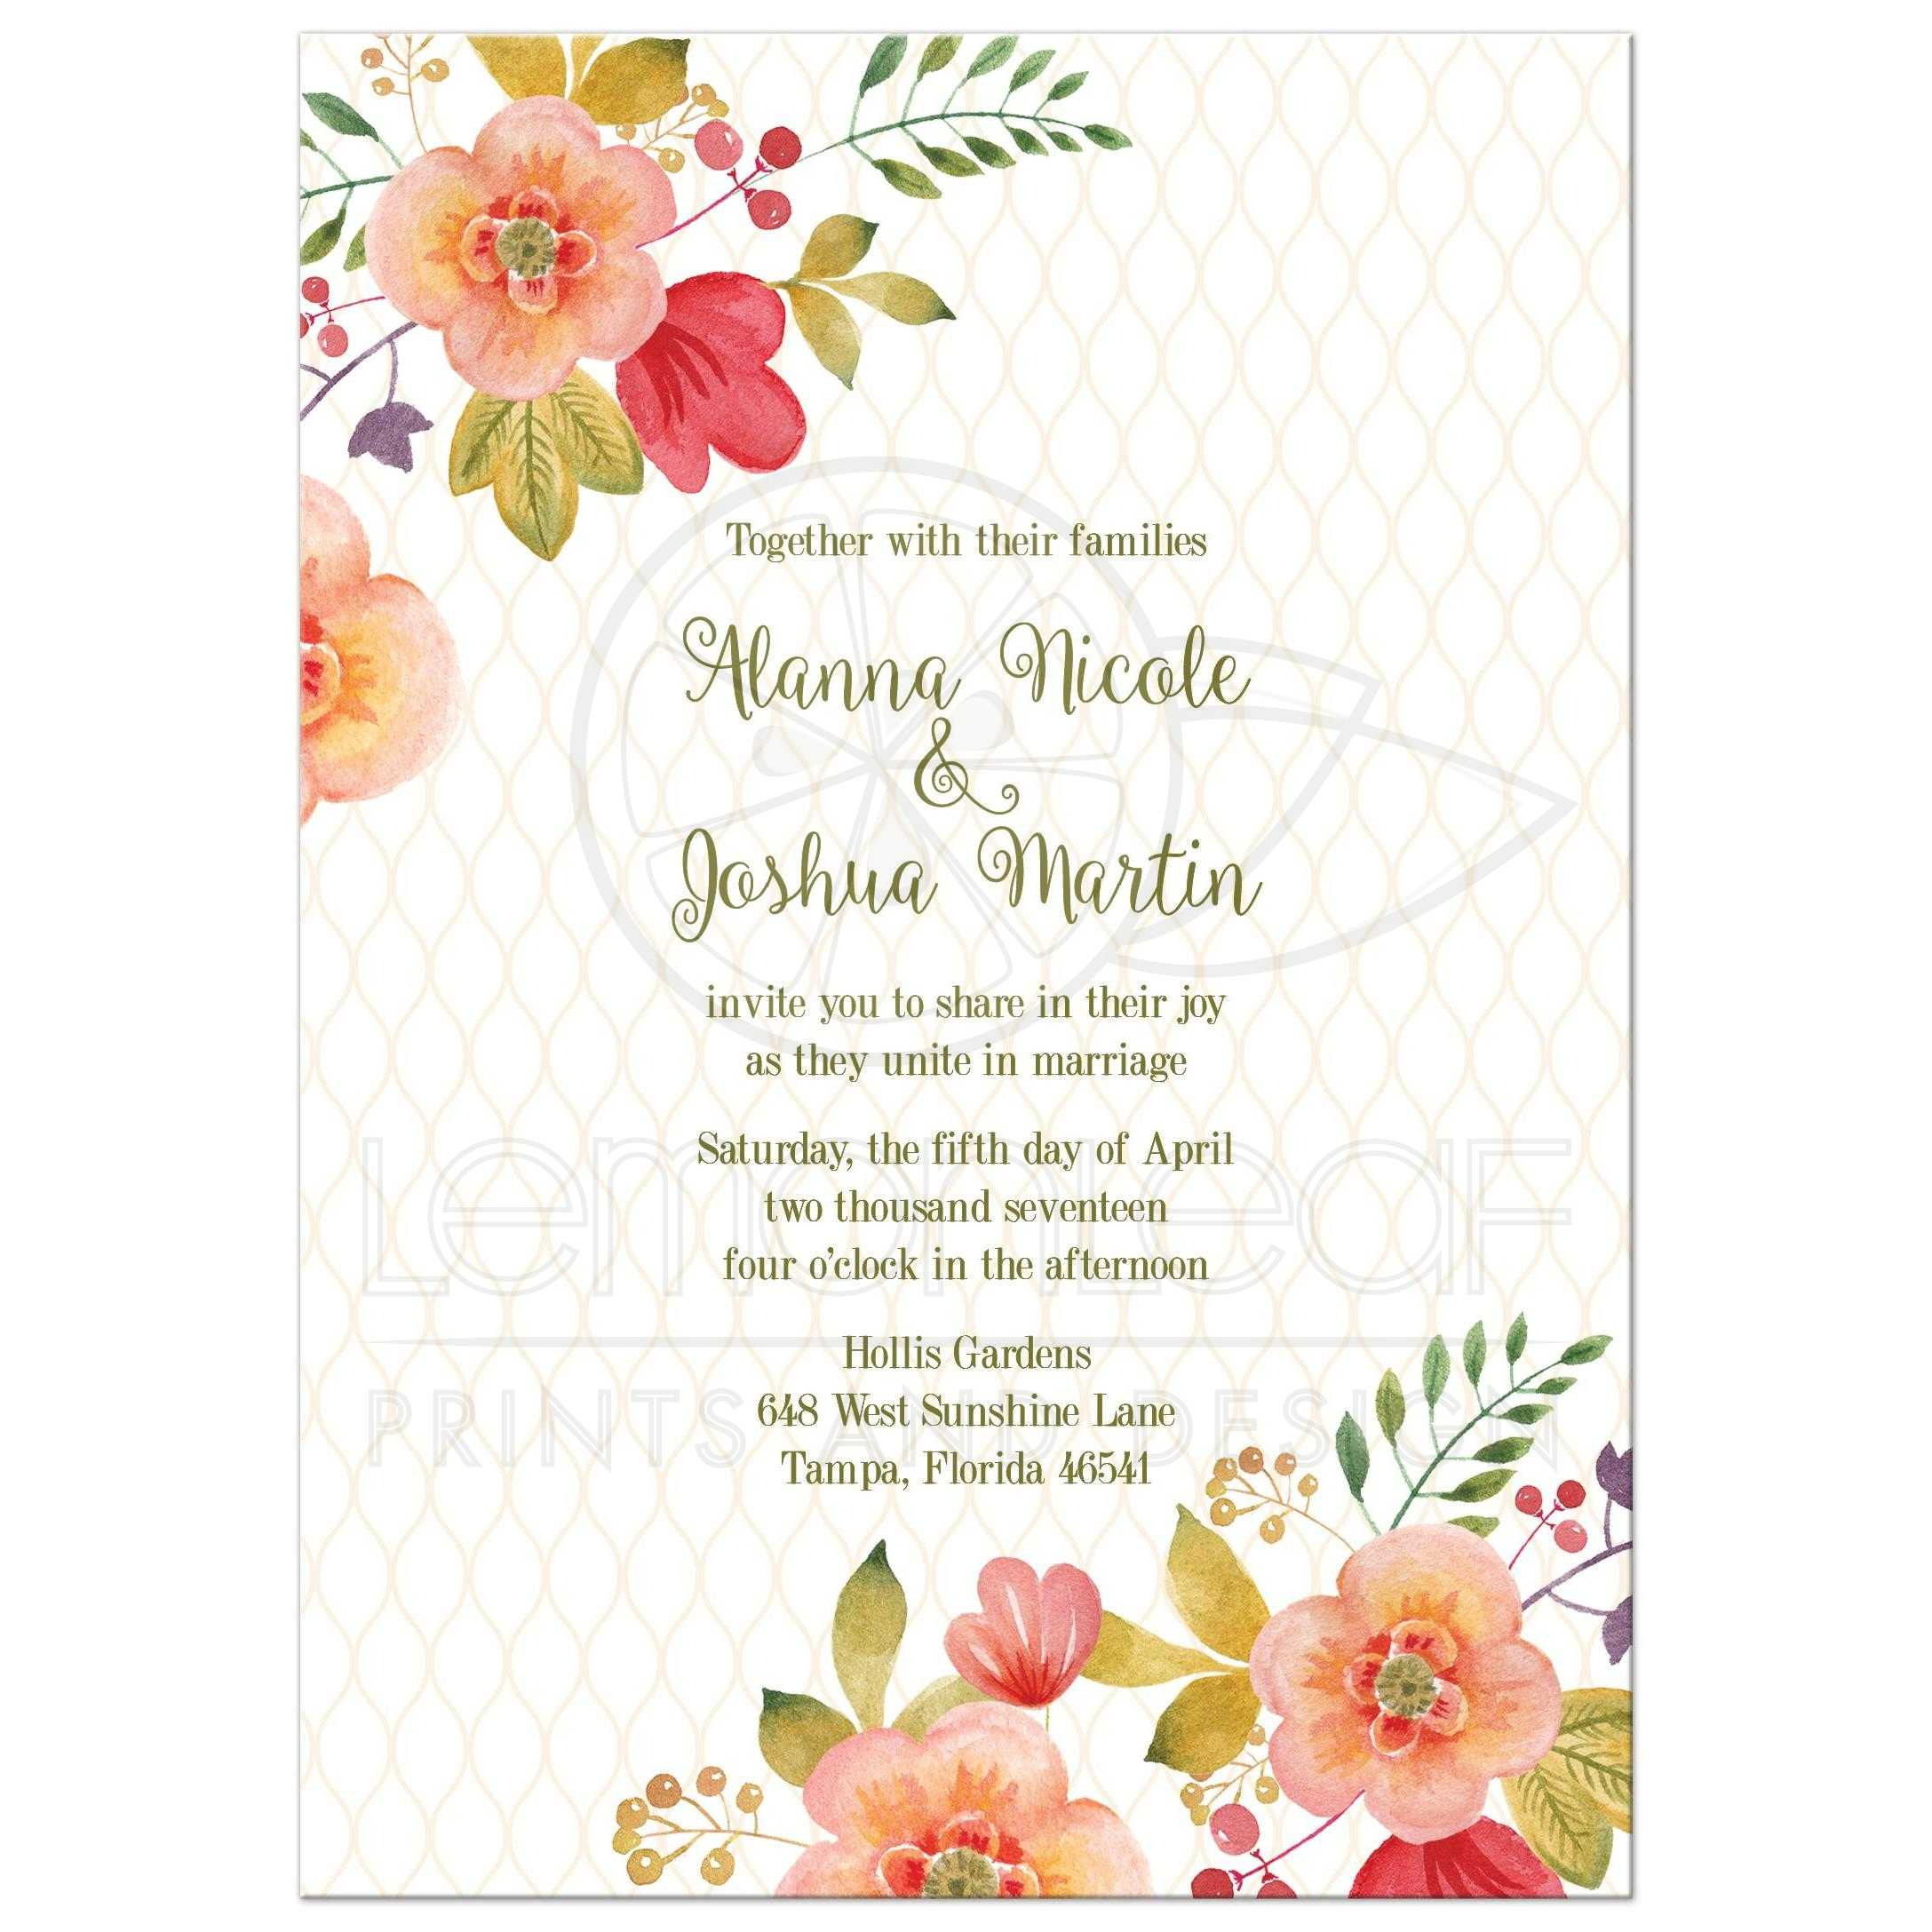 Olive Green And Pink Watercolor Flowers Wedding Invitation: Wedding Invitations With Flowers At Websimilar.org